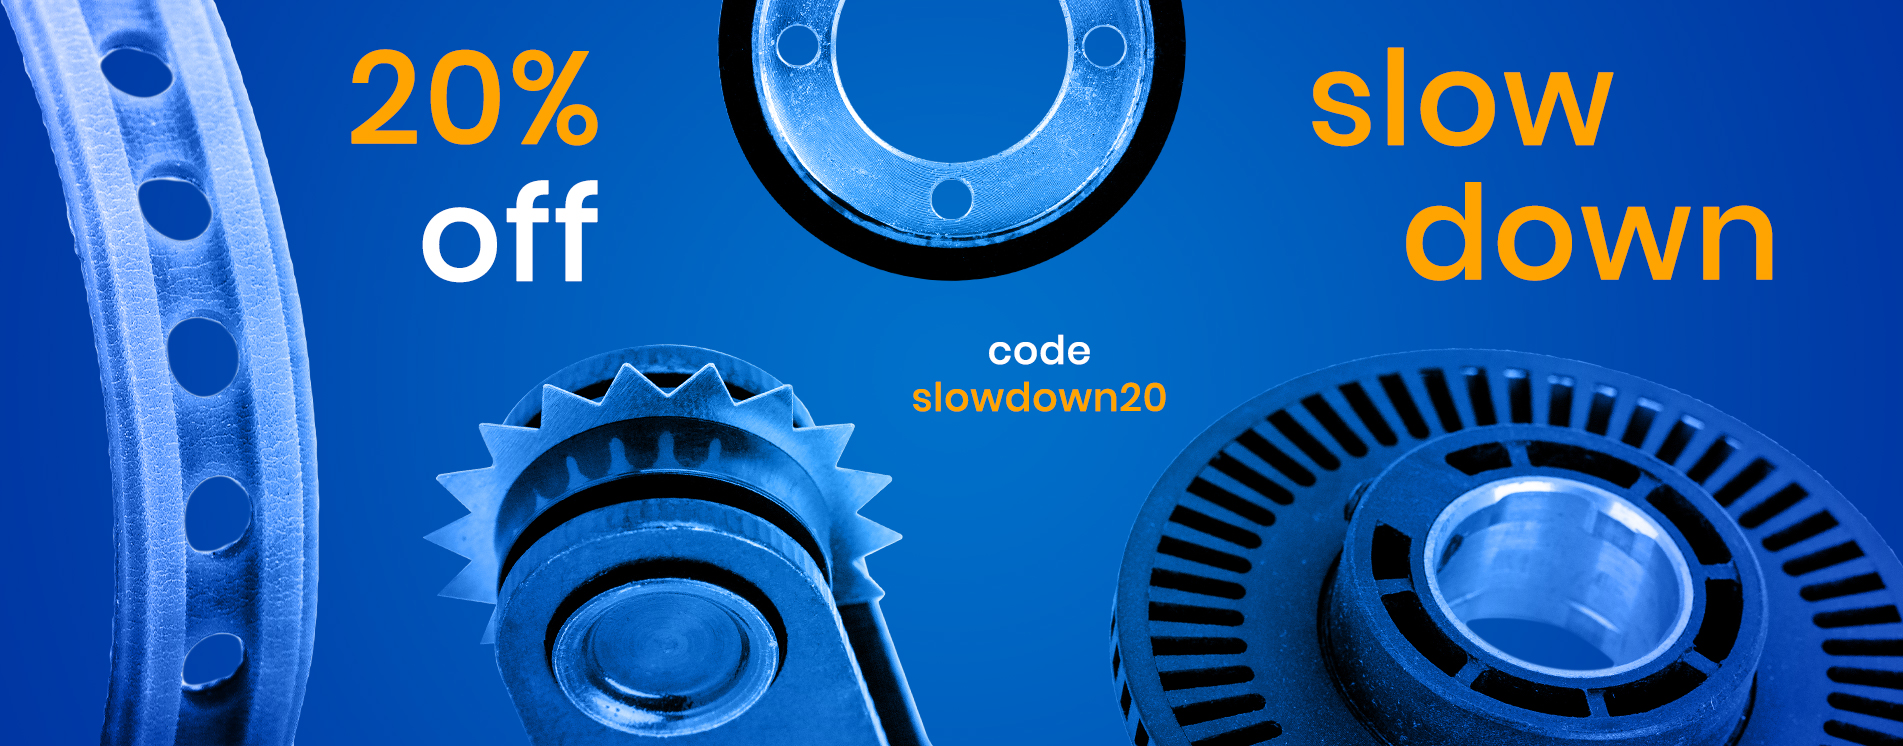 20% OFF Slowdown Products